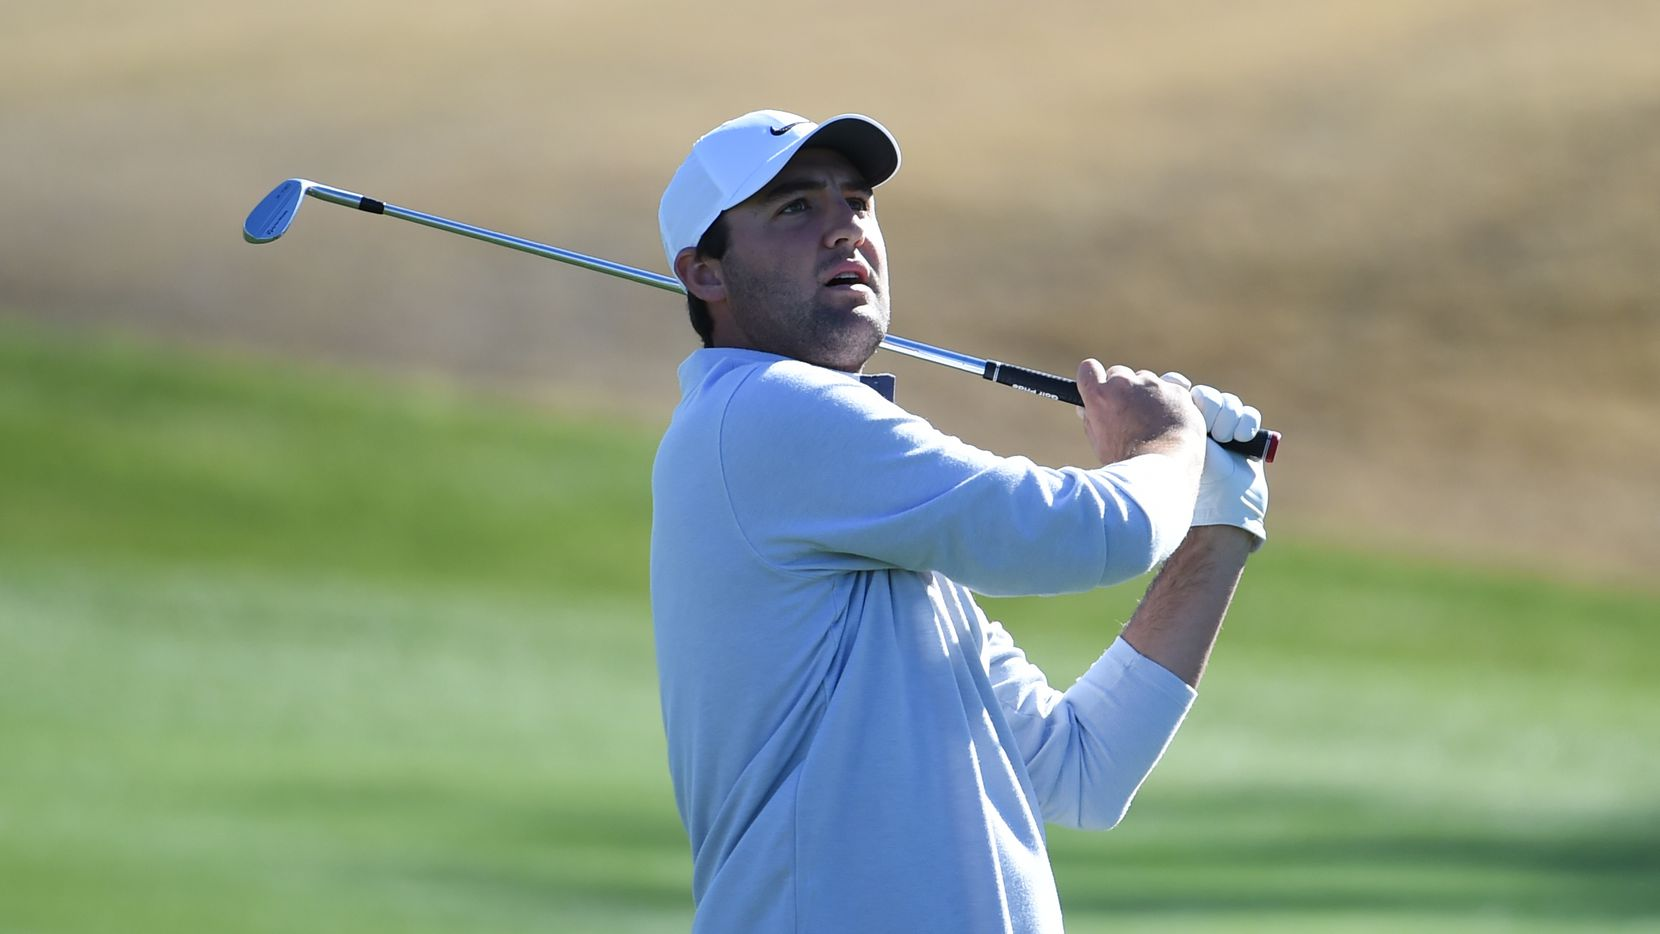 LA QUINTA, CALIFORNIA - JANUARY 18: Scottie Scheffler plays his shot during the third round of The American Express tournament  at the Stadium Course at PGA West on January 18, 2020 in La Quinta, California.